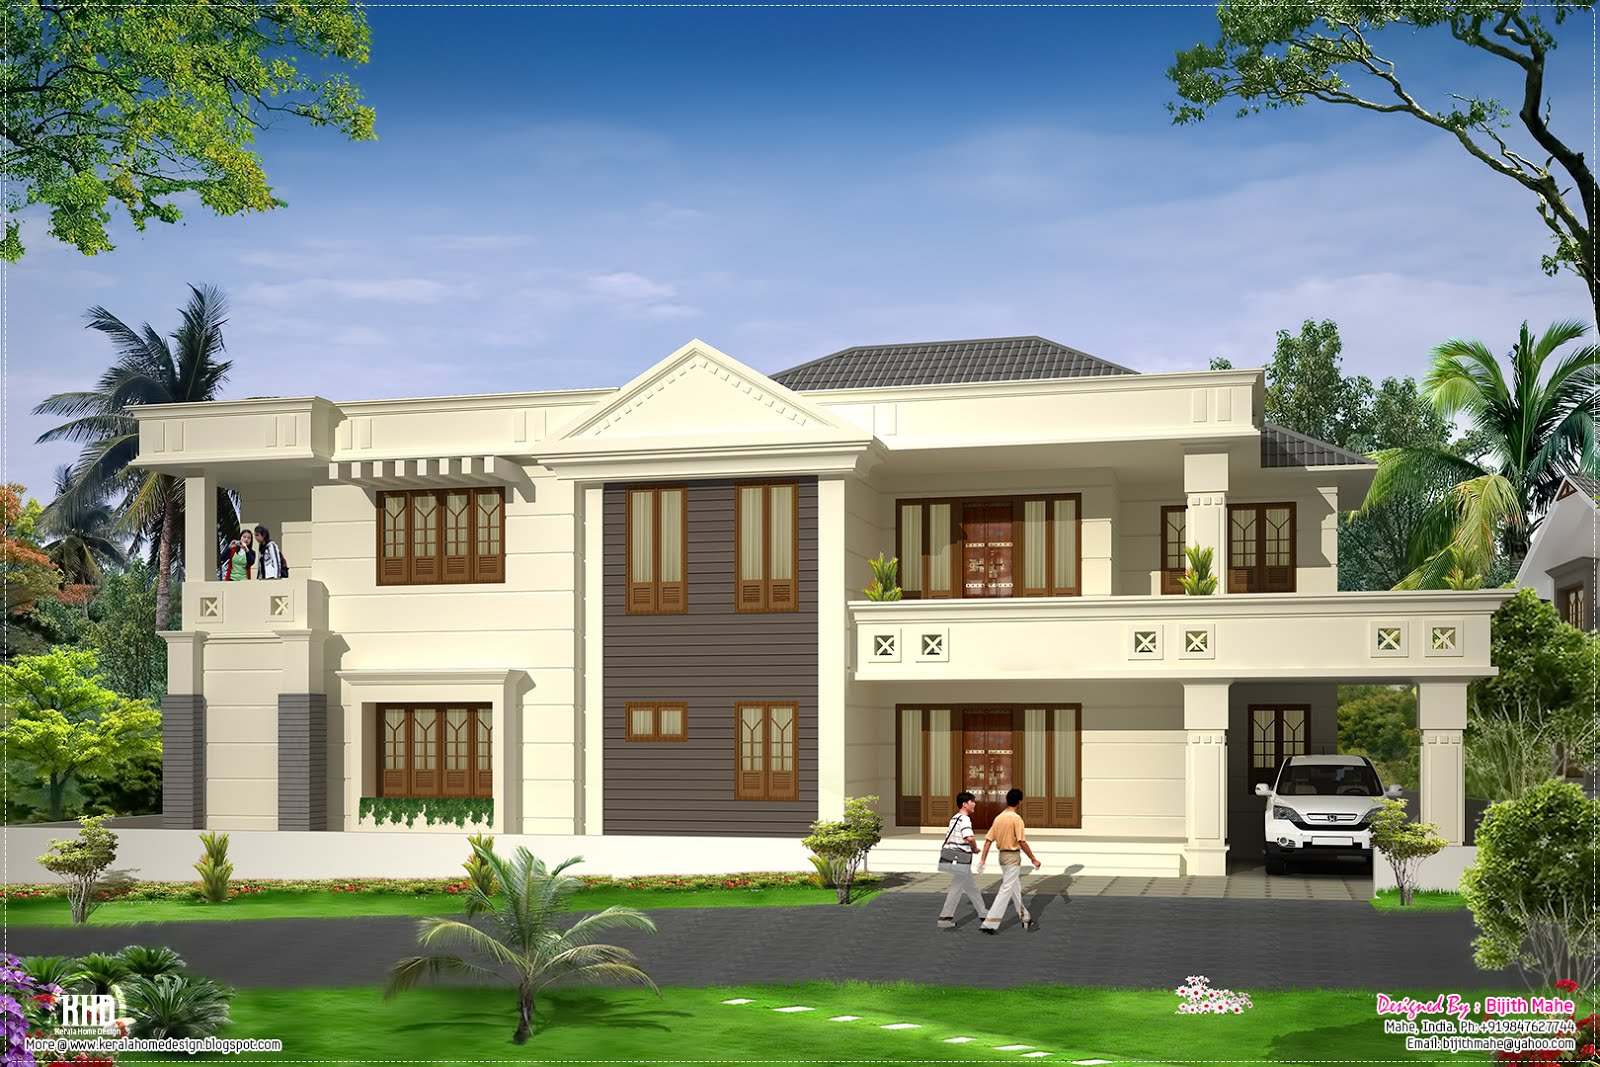 Modern luxury home design kerala home design and floor plans for Luxury contemporary house plans